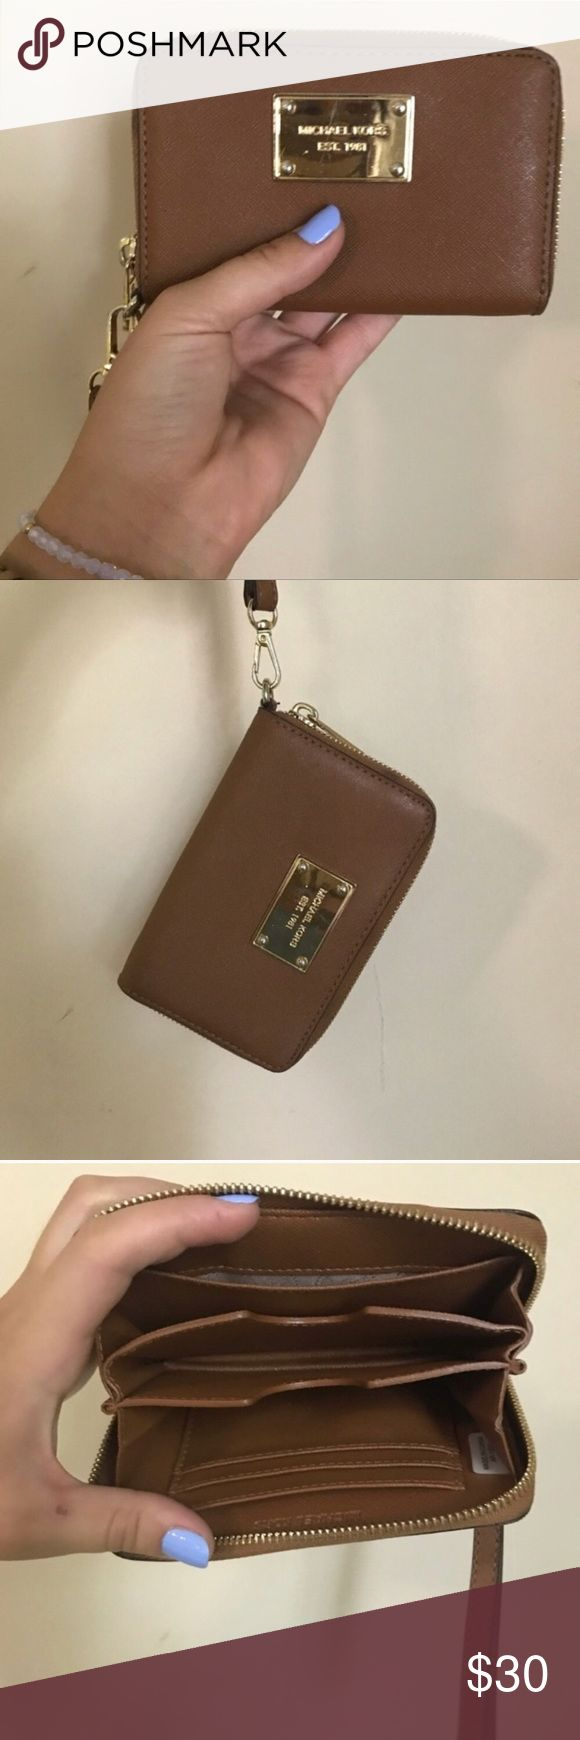 •brown michael kors wristlet wallet• Gently used Michael kors wristlet wallet. Last photos show wear areas. Few scratches on plate and black mark on back. Michael Kors Bags Clutches & Wristlets